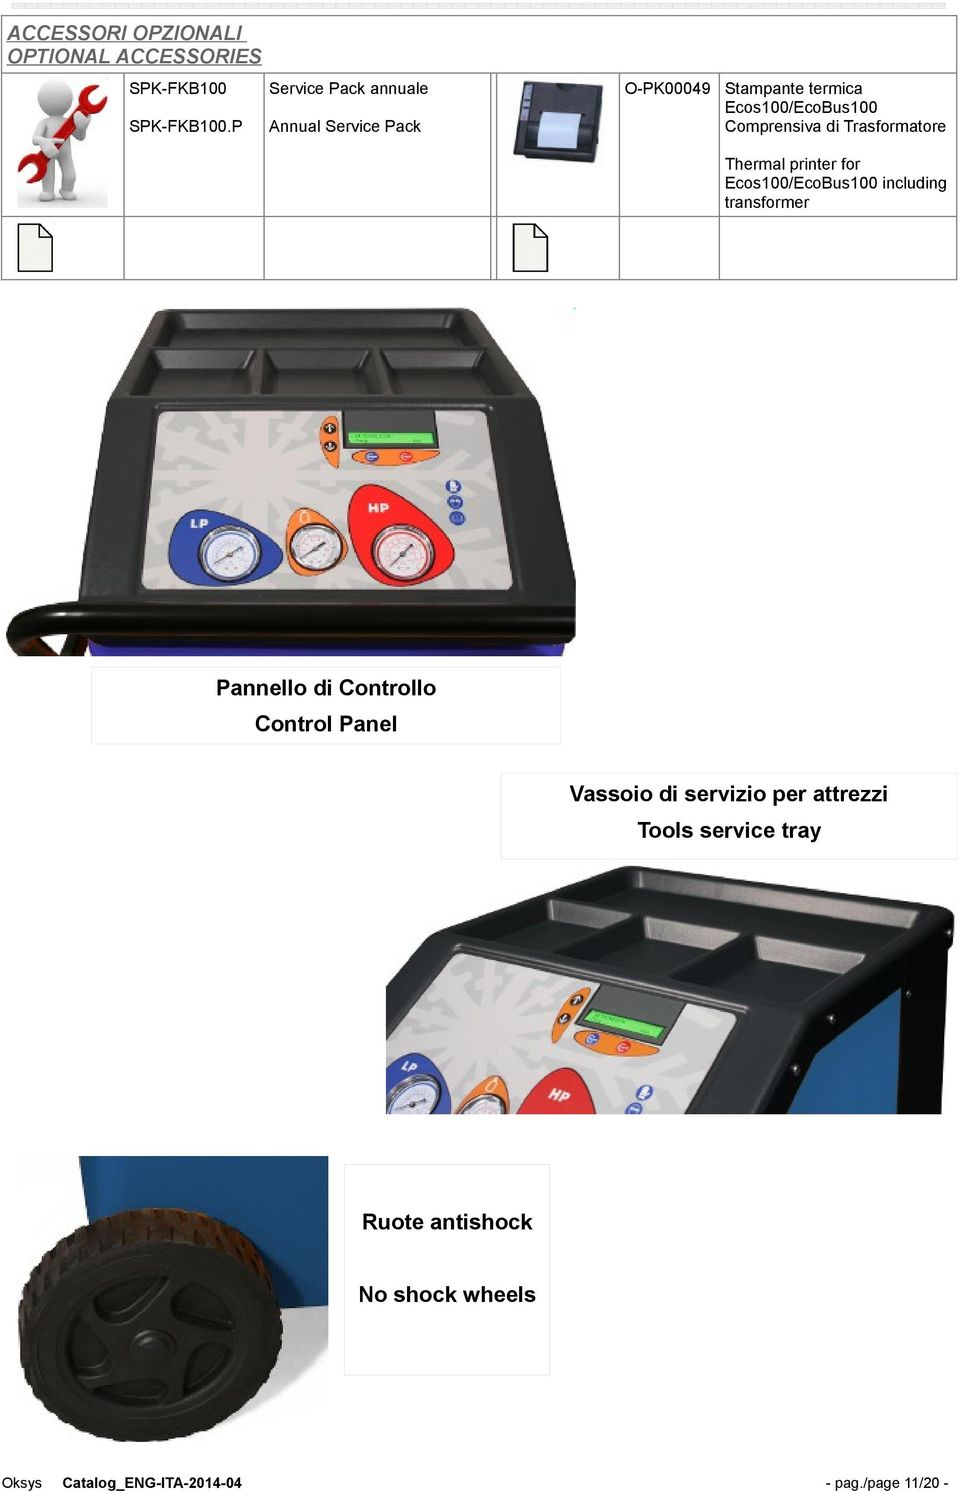 Trasformatore Thermal printer for Ecos100/EcoBus100 including transformer Pannello di